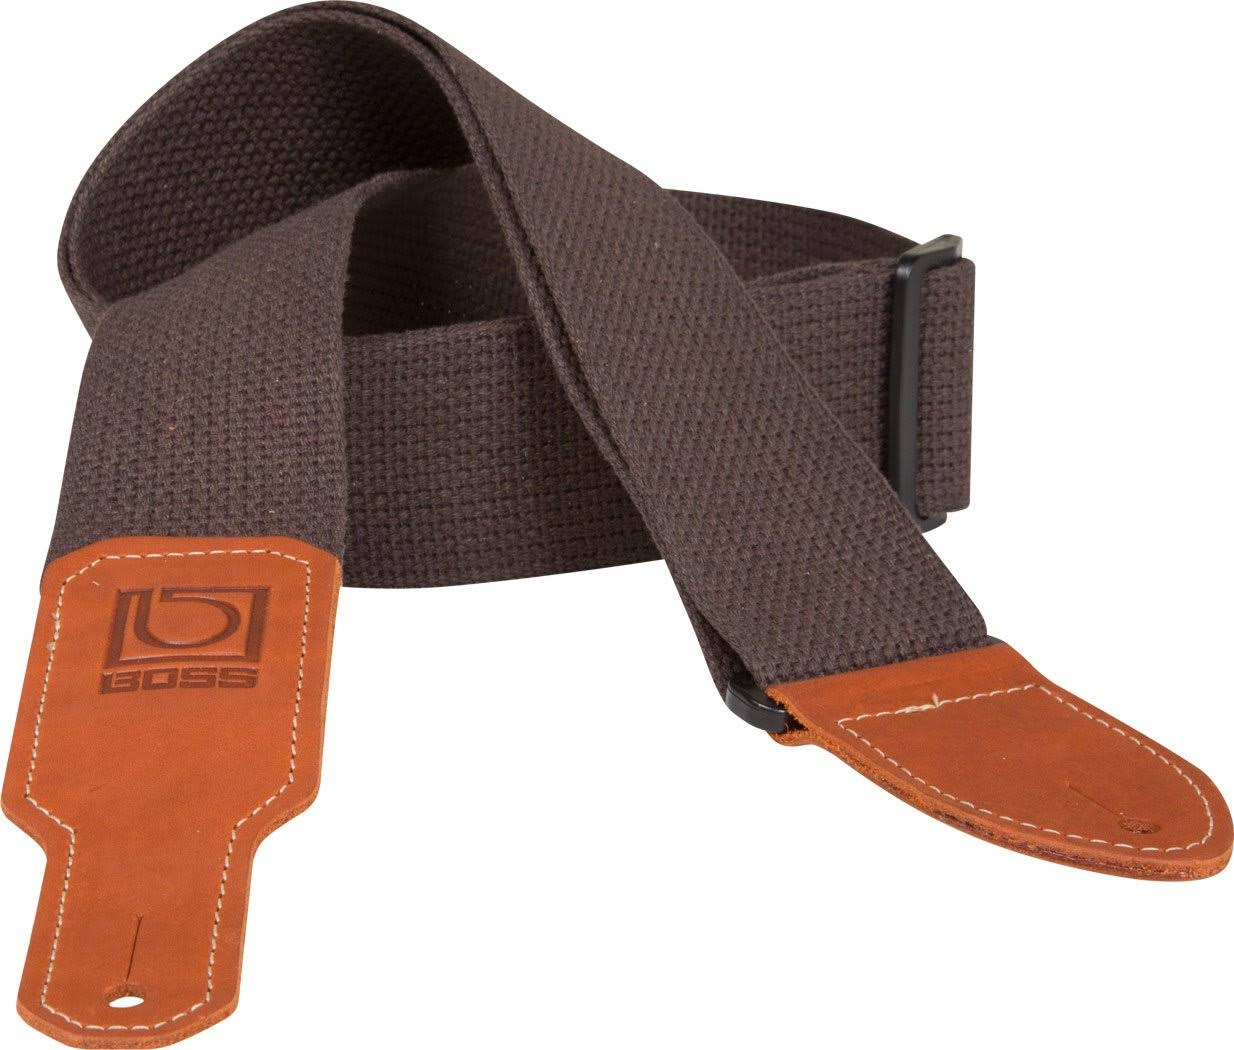 "Boss BSC-20-BRN 2"" Brown Cotton Guitar Strap"